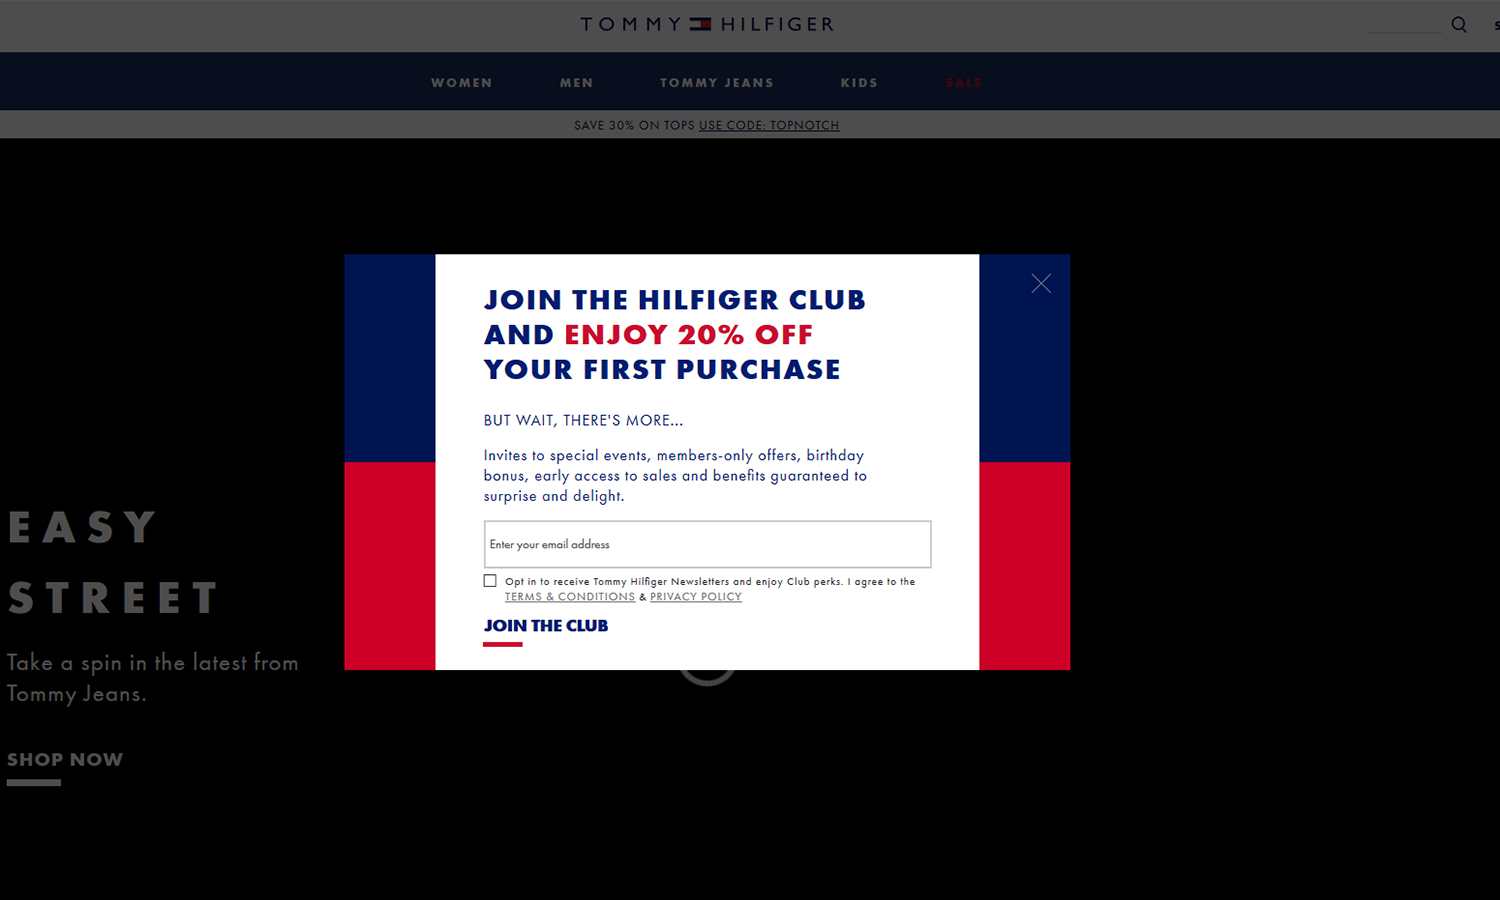 Tommy Hilfiger's email pop-up